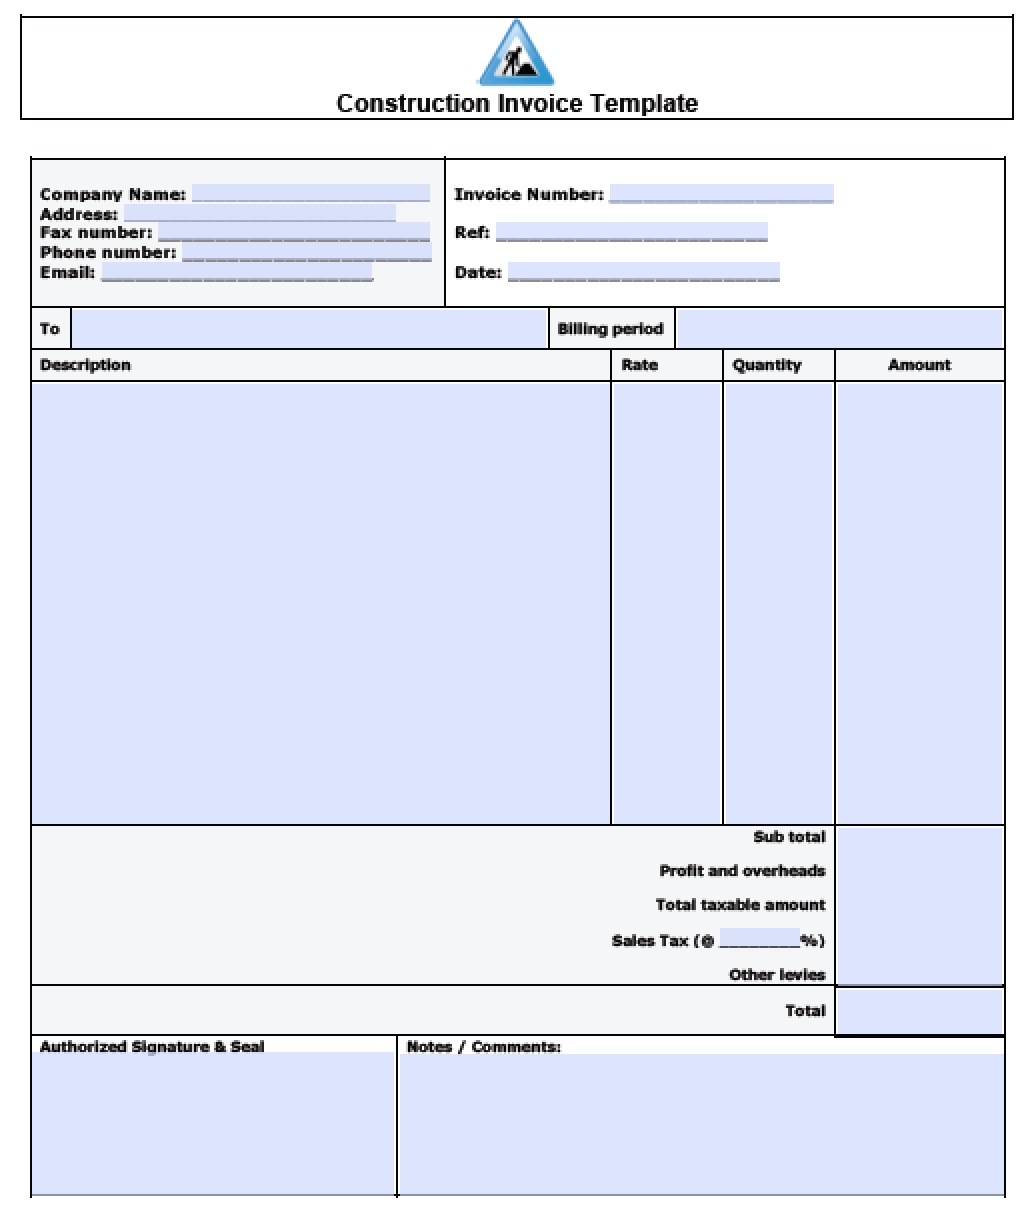 Free Construction Invoice Template Excel PDF Word Doc - Free construction invoice template